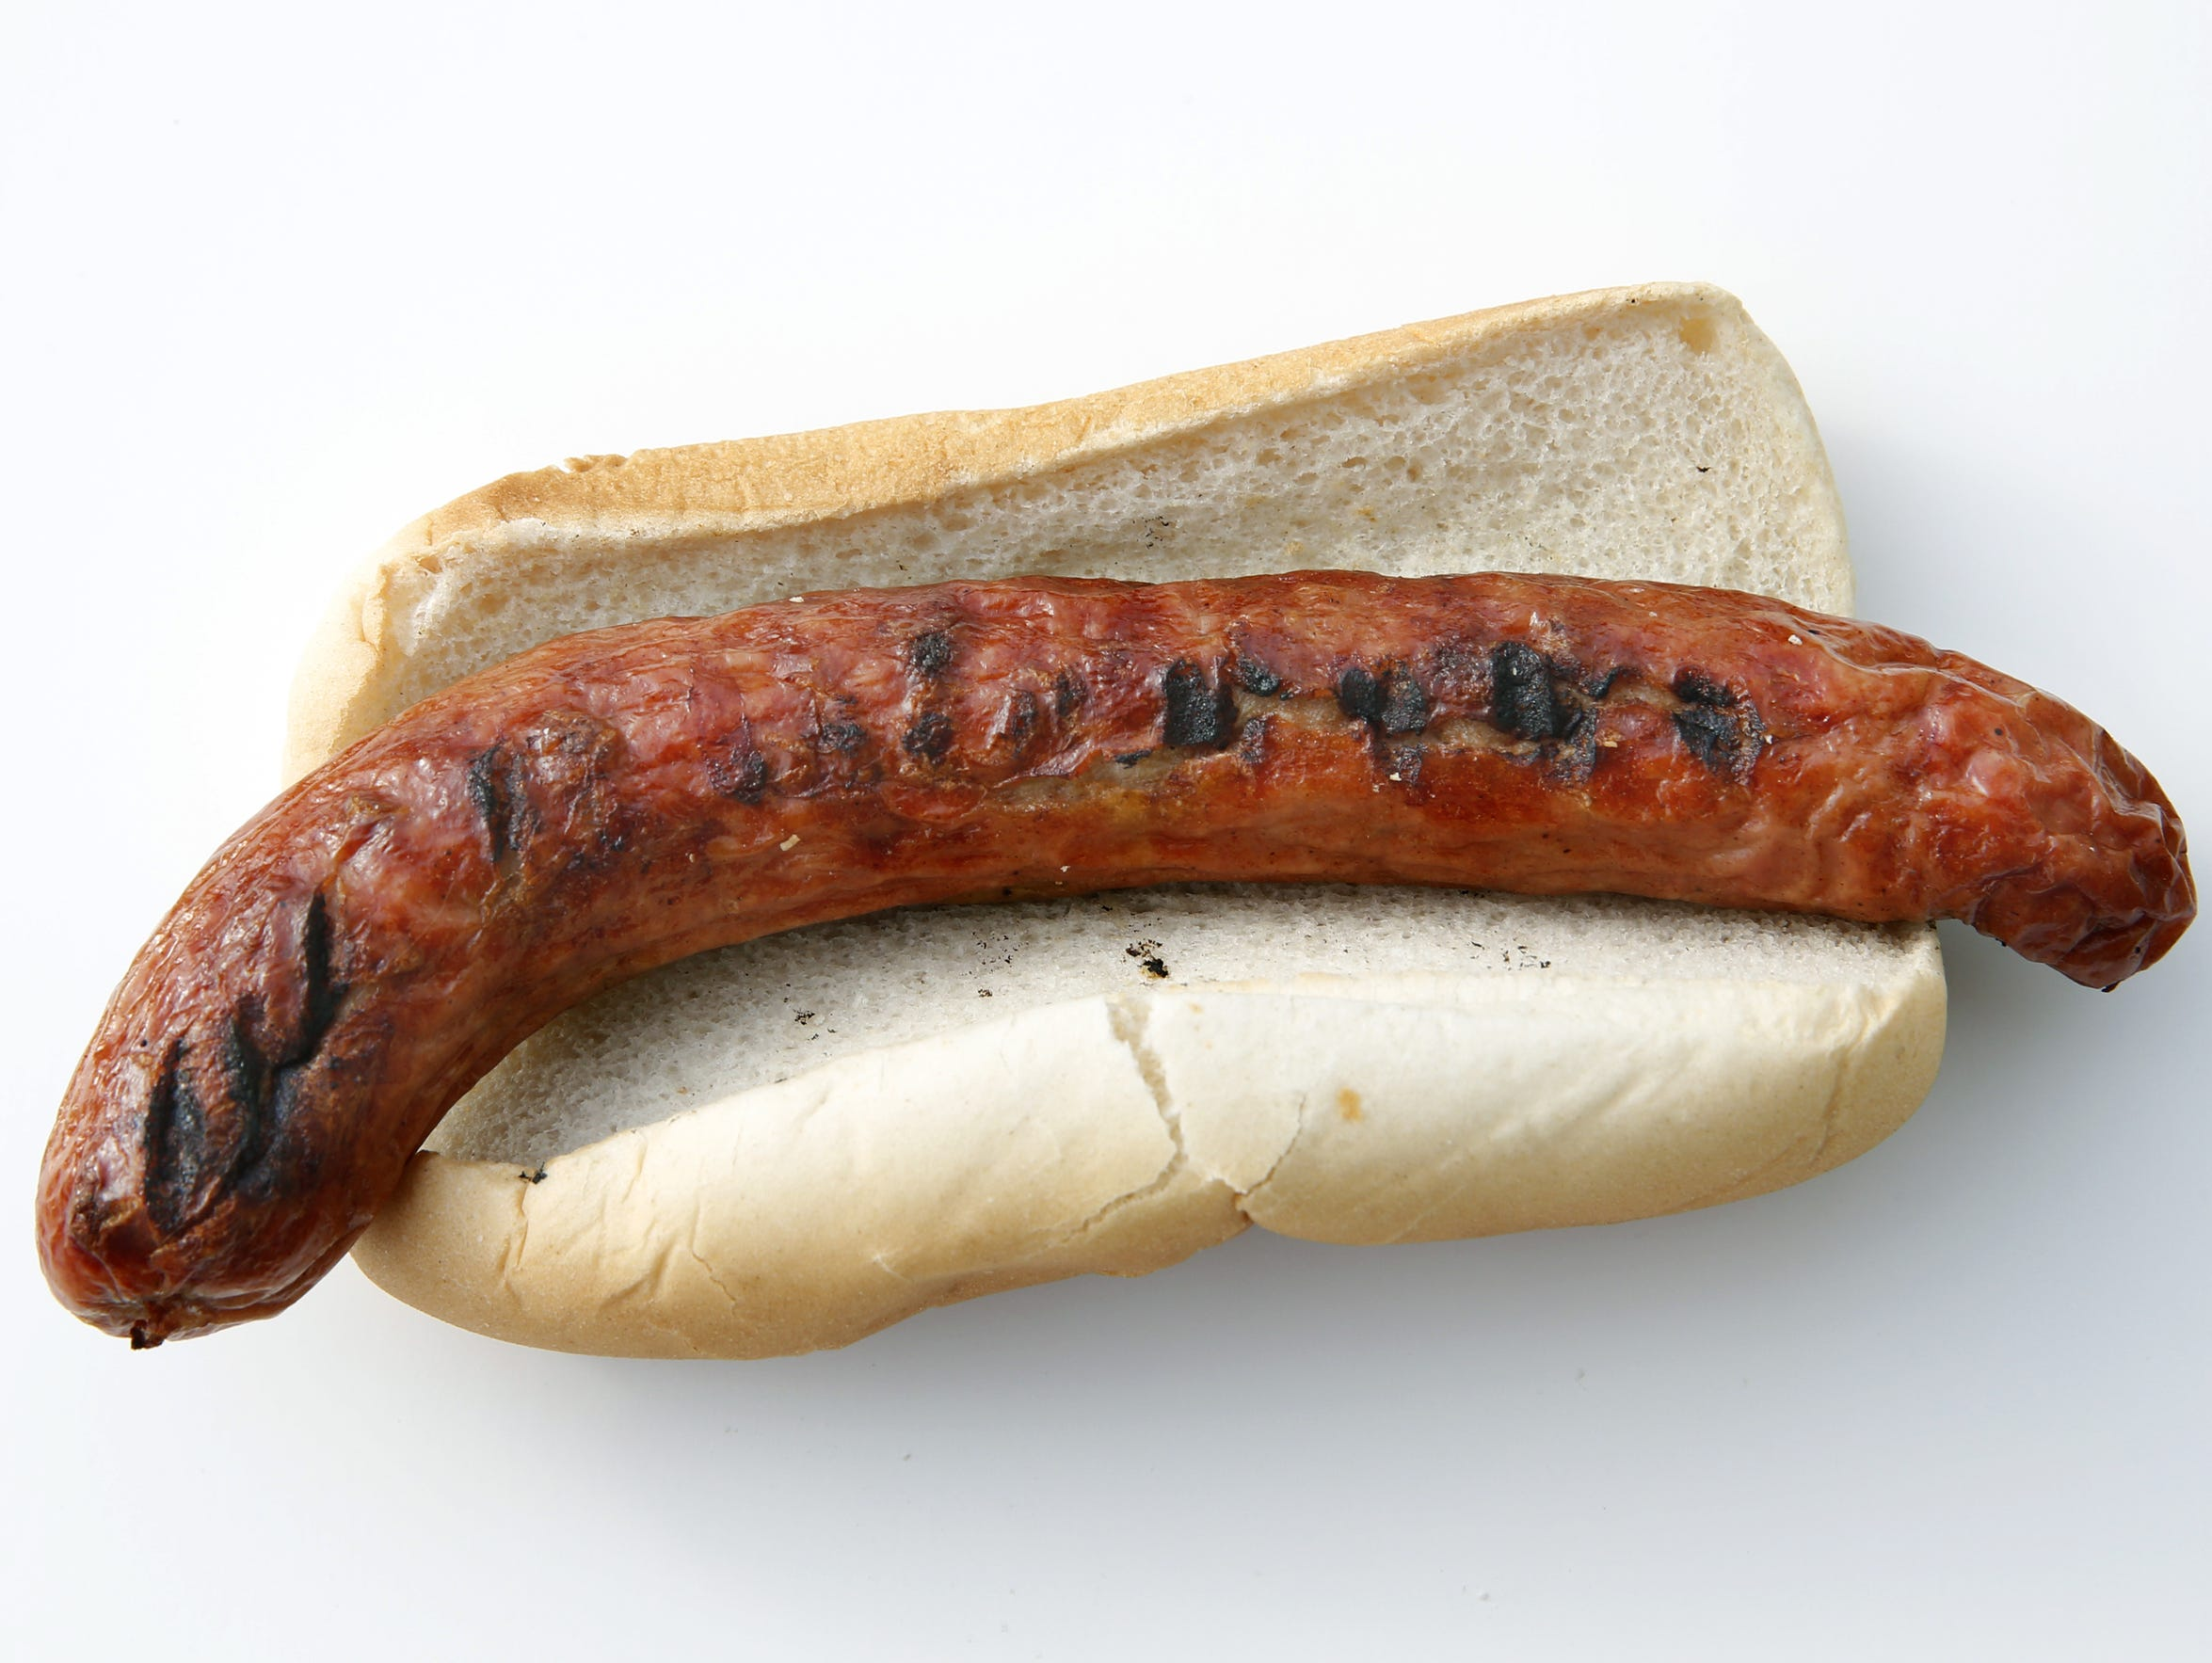 The hot dogs from Costanza's Sausage in Webster were